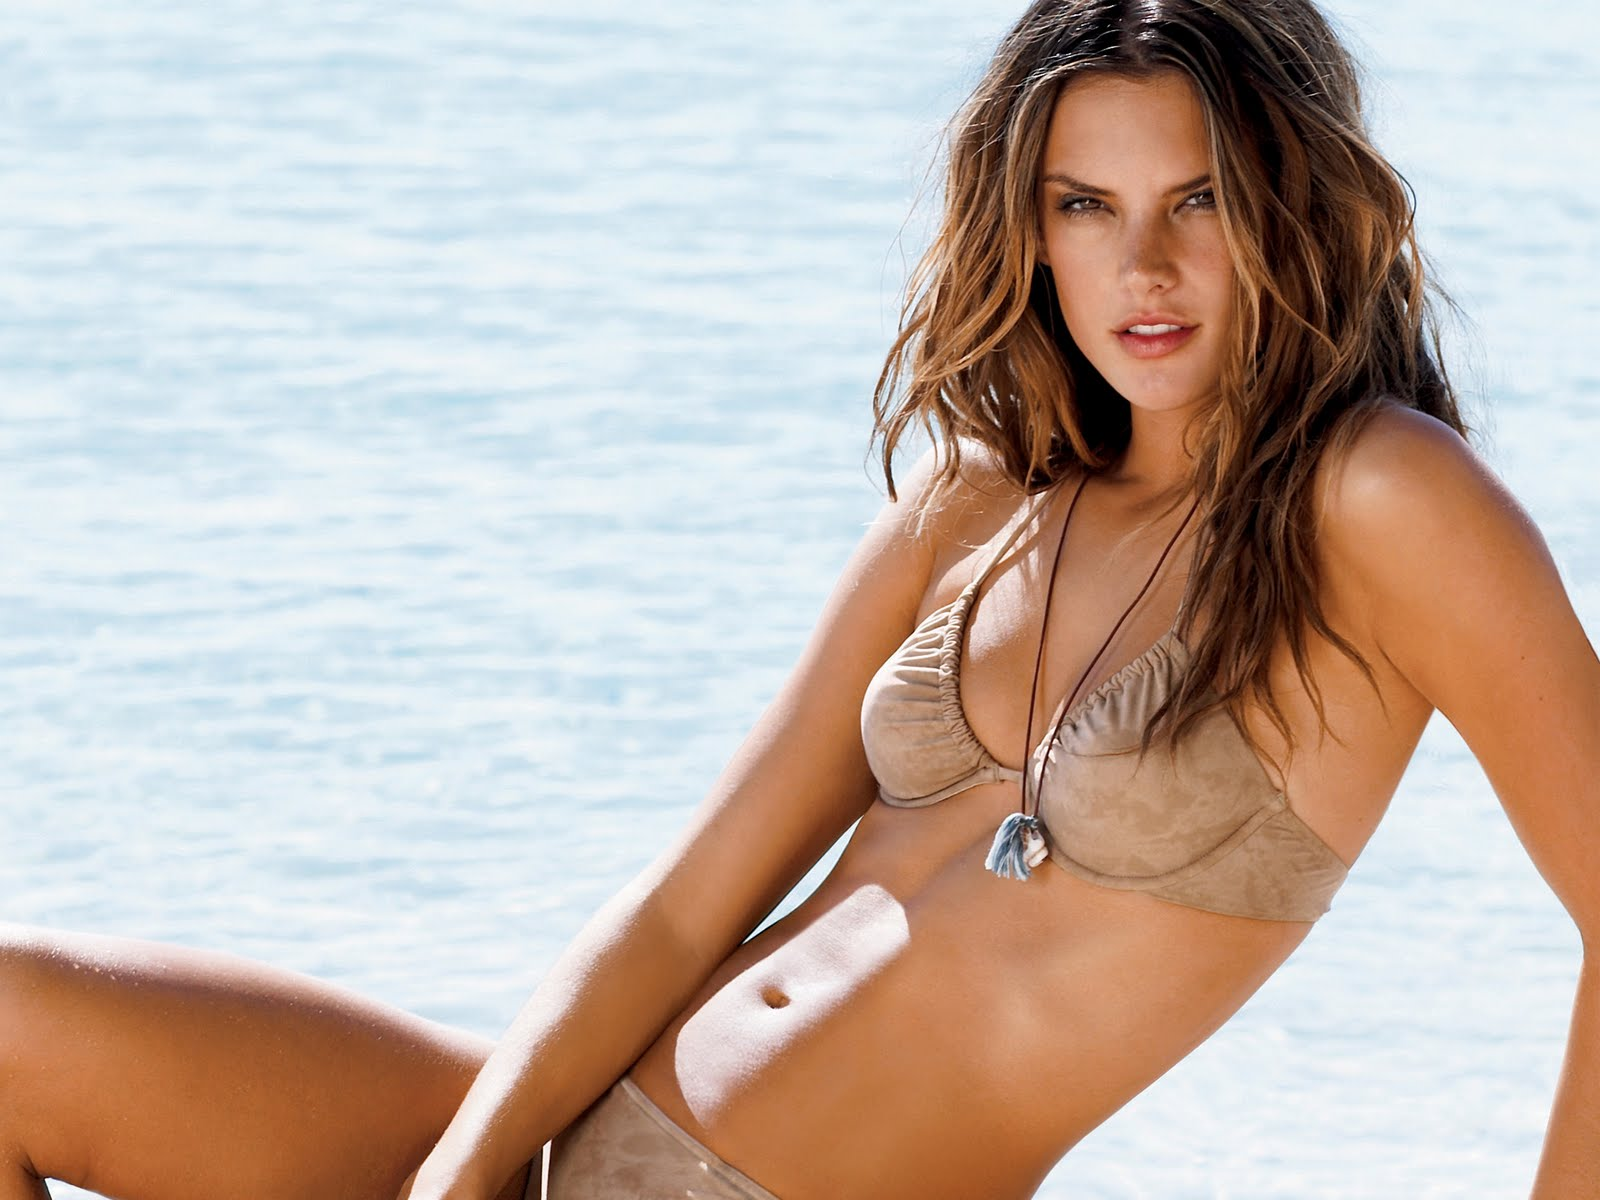 [Immagine: alessandra_ambrosio_bikini_wallpapers.jpg]